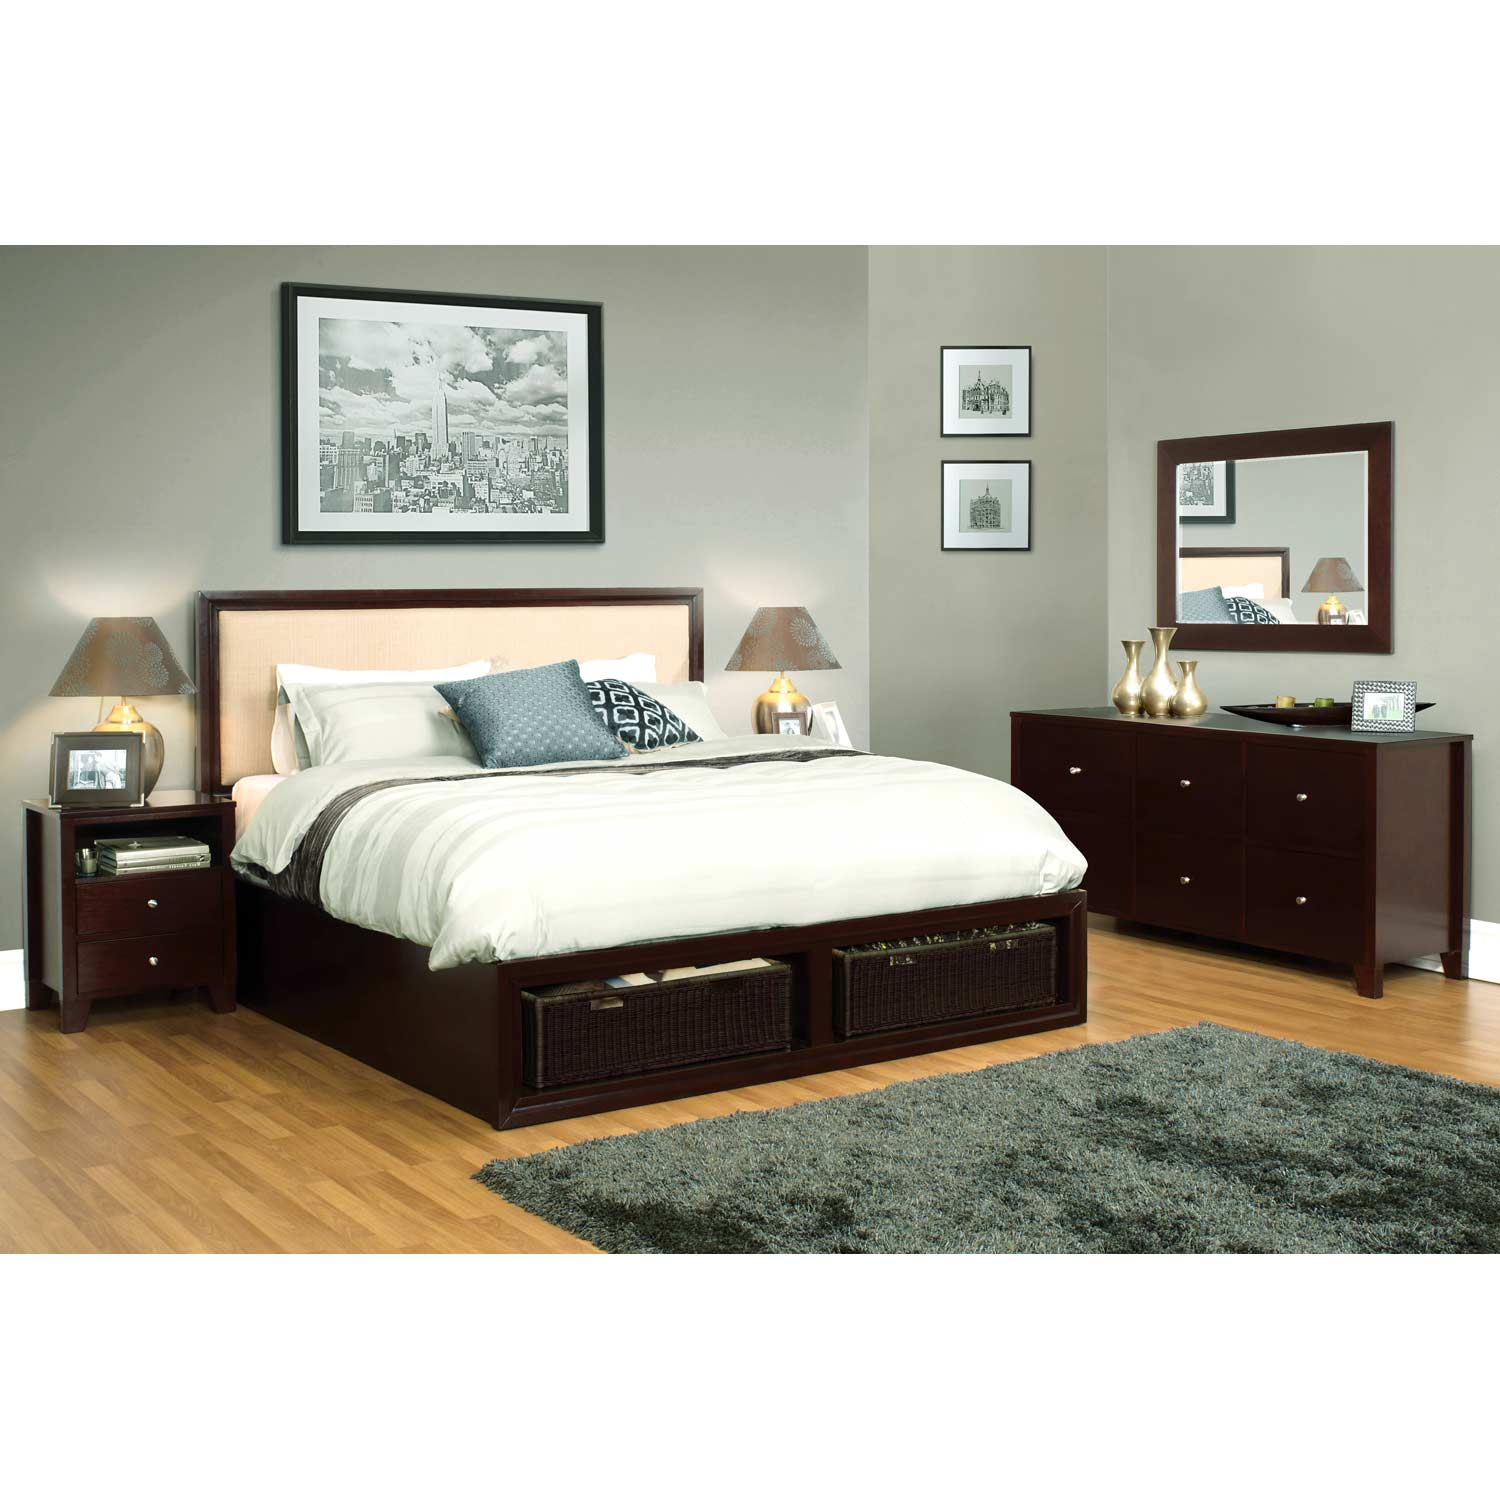 Gracie 5 Piece Bedroom Set - Upholstered Headboard, Cappuccino | DCG on renaissance bedroom set, monte carlo canopy bedroom set, white king size bedroom set, luxury full size bedroom set, white canopy bedroom set, white girls bedroom set, discount ashley furniture bedroom set, race car bedroom set, belmar bedroom set, south shore canopy bedroom set, marais bedroom set, sandy beach collection bedroom set, black full size bedroom set, tranquility bedroom set, glass bedroom set, caprivi bedroom set, used queen size bedroom set, white queen bedroom set, cherry wood sleigh bedroom set, zen bedroom set,